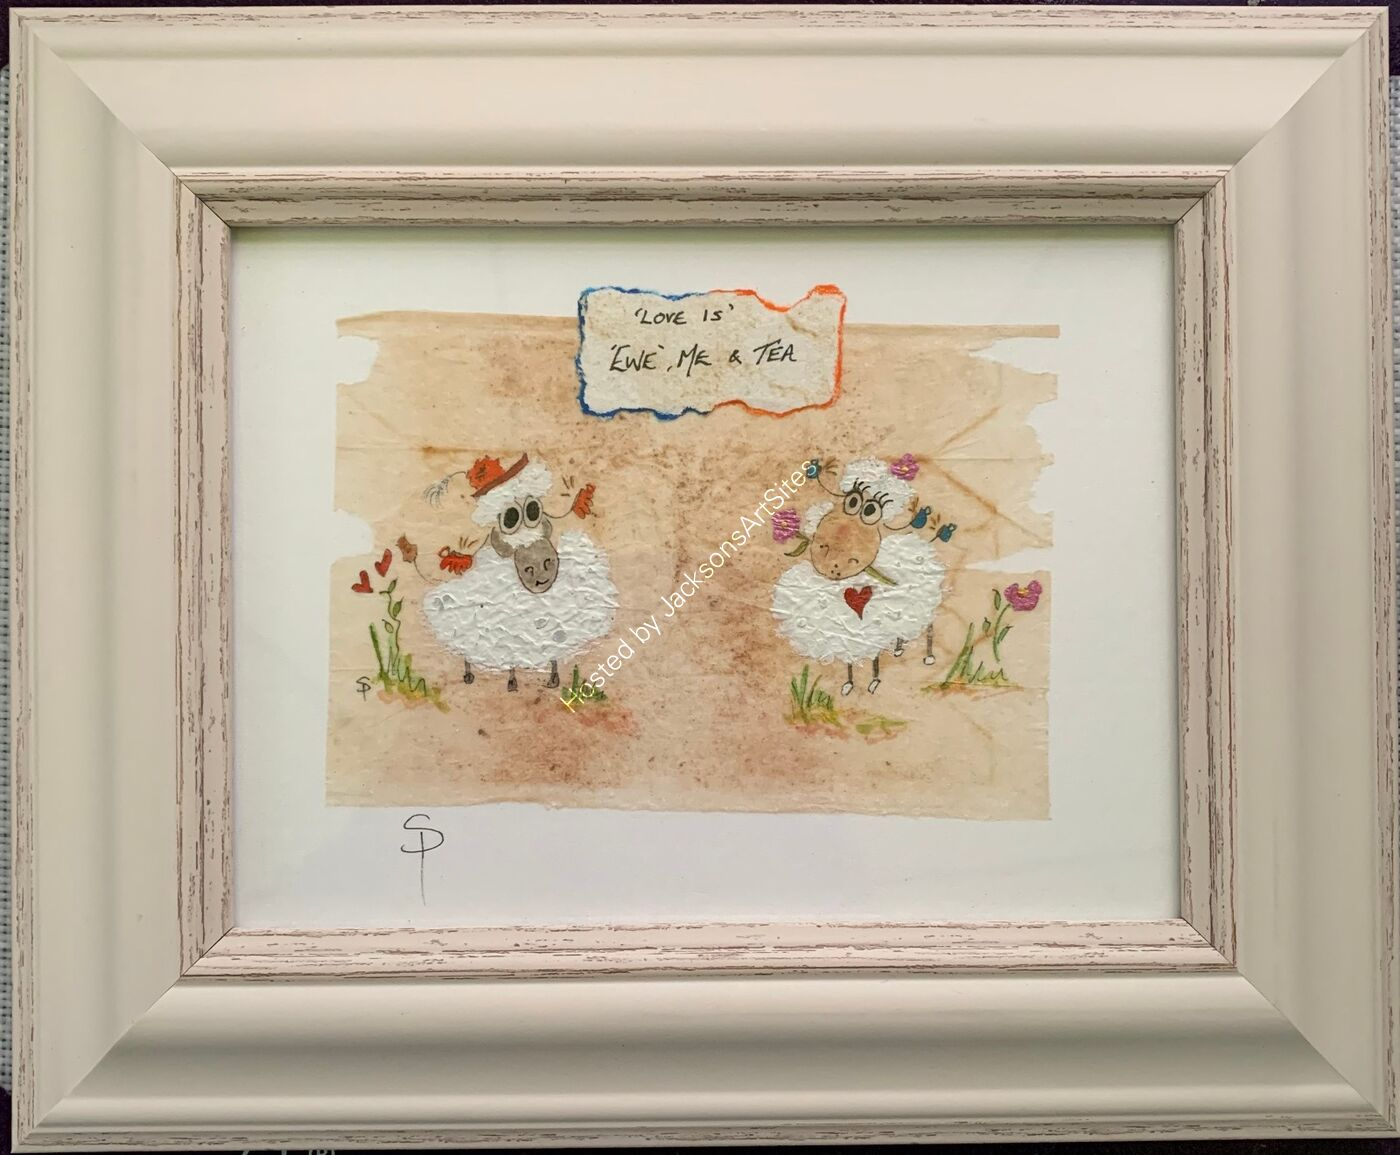 'Love Is' - Ewe, Me & Tea - Original Herbal Tea Bag